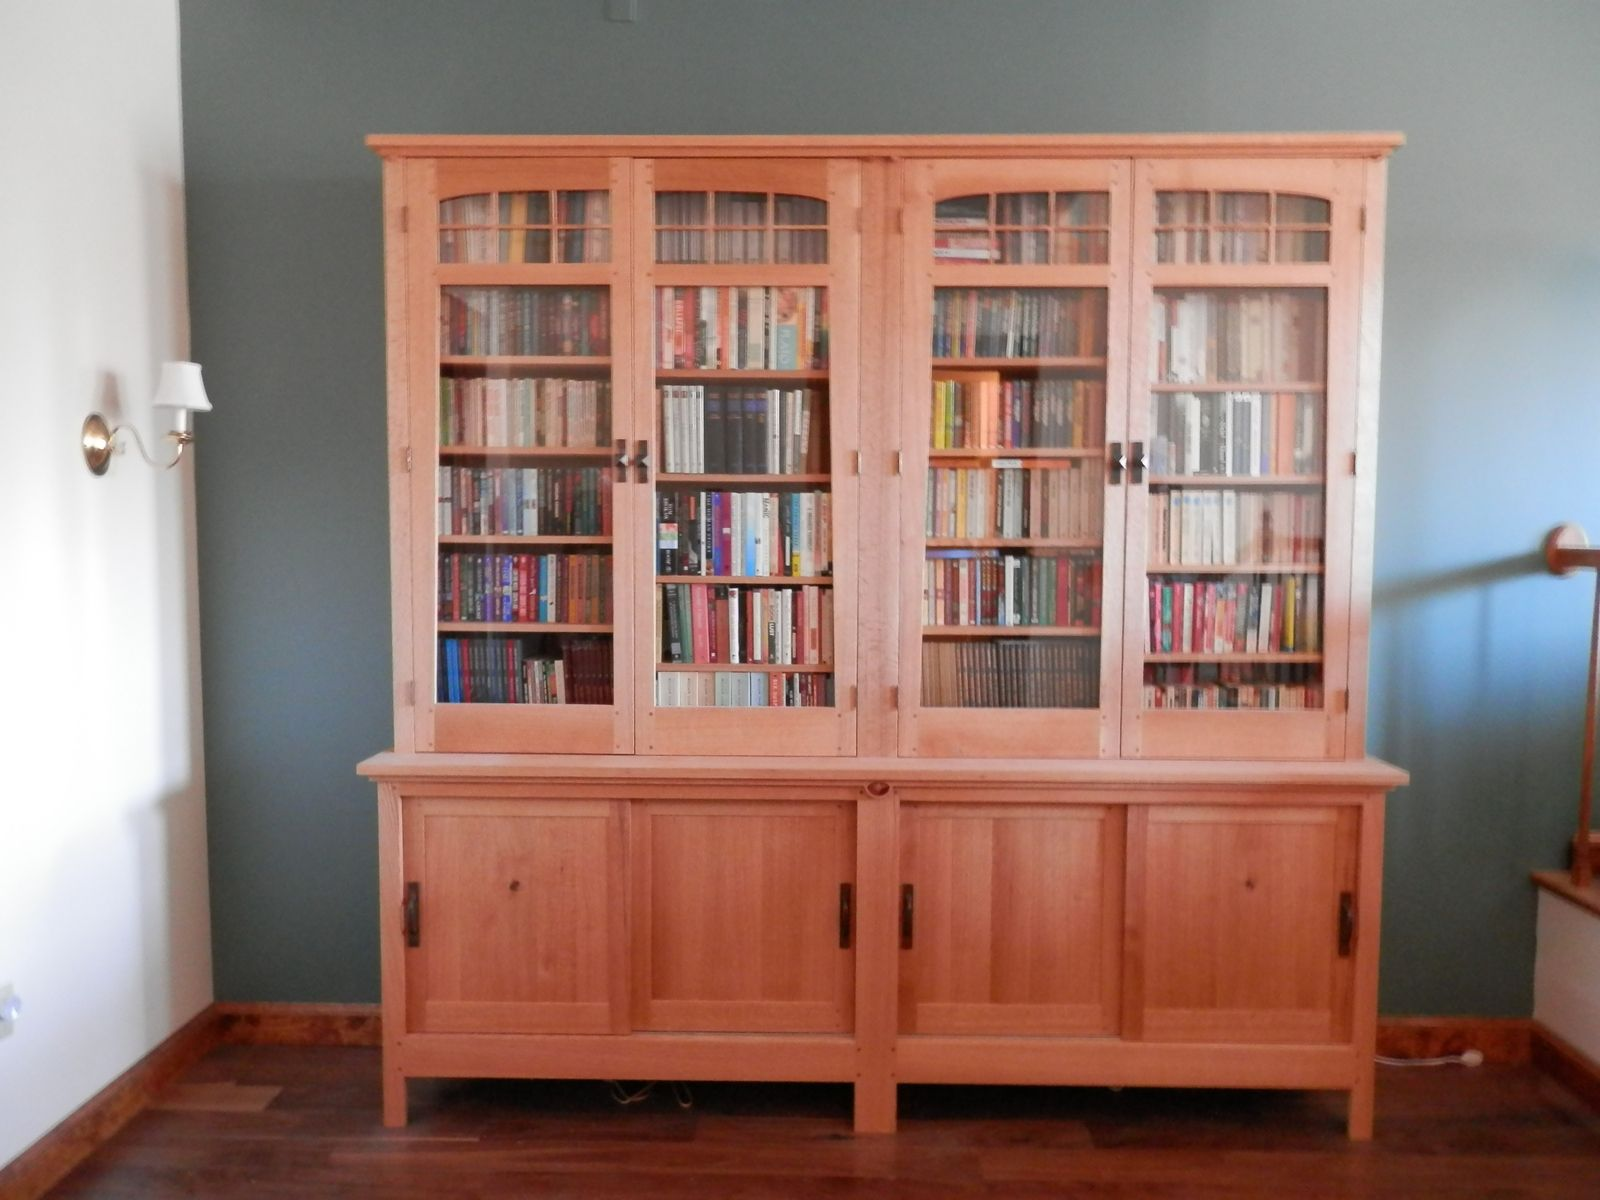 mission style, arts & crafts style, craftsman style, stickley